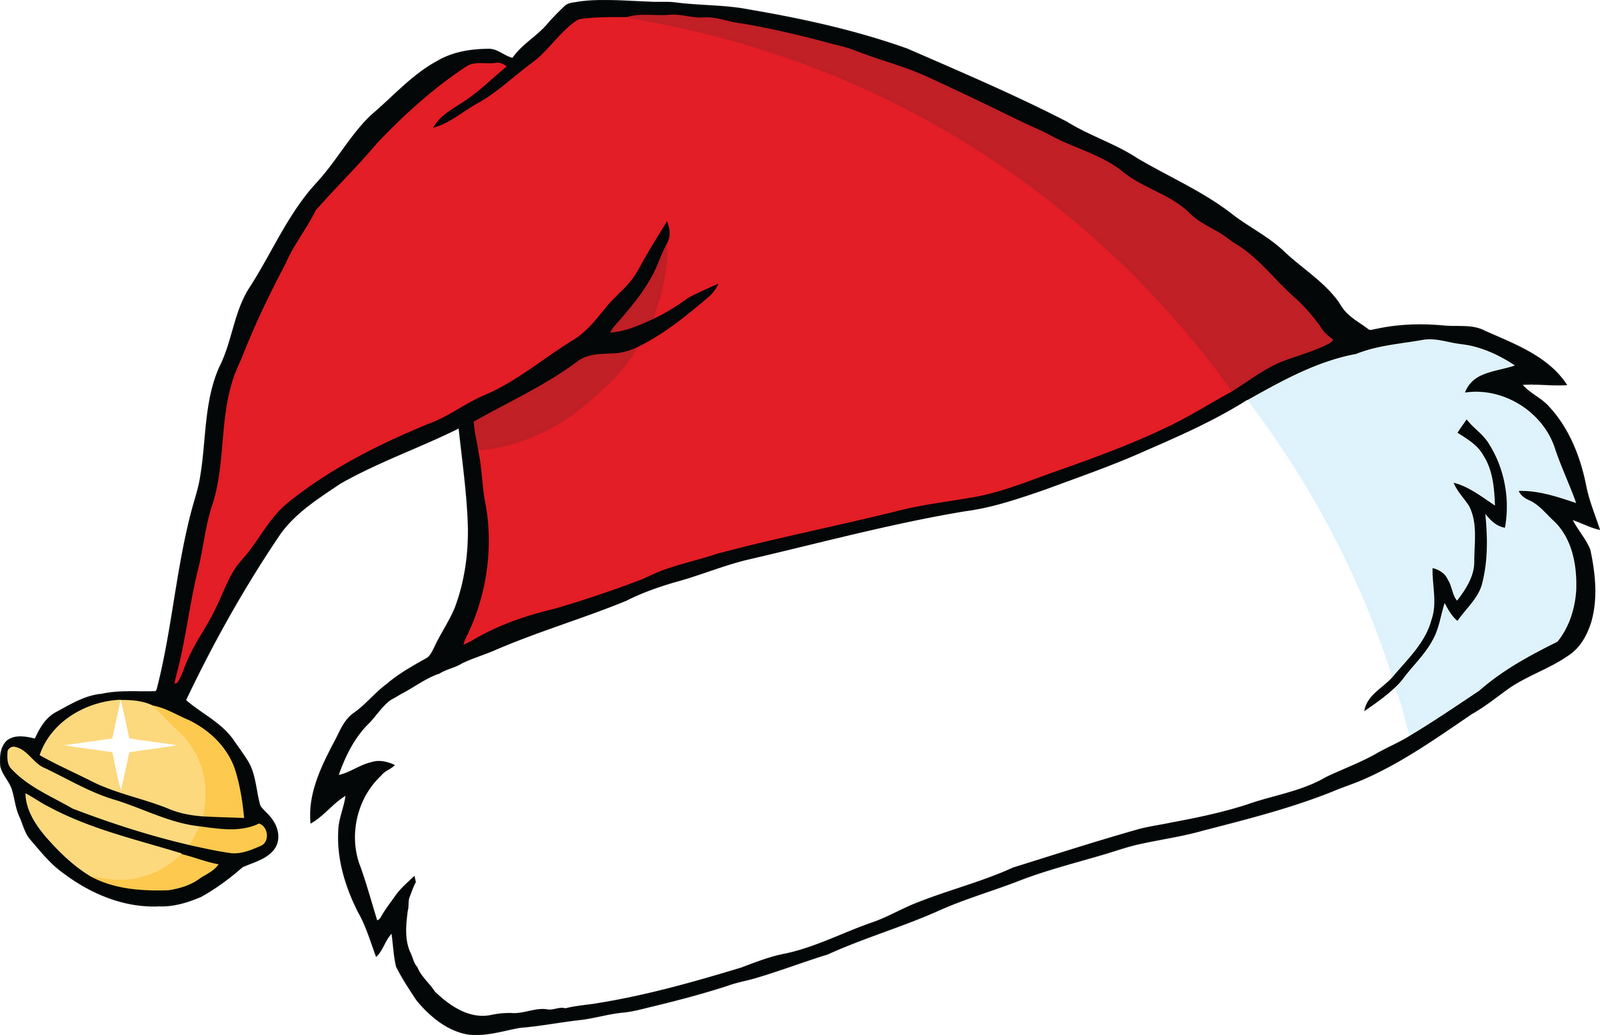 Christmas hat clipart outline